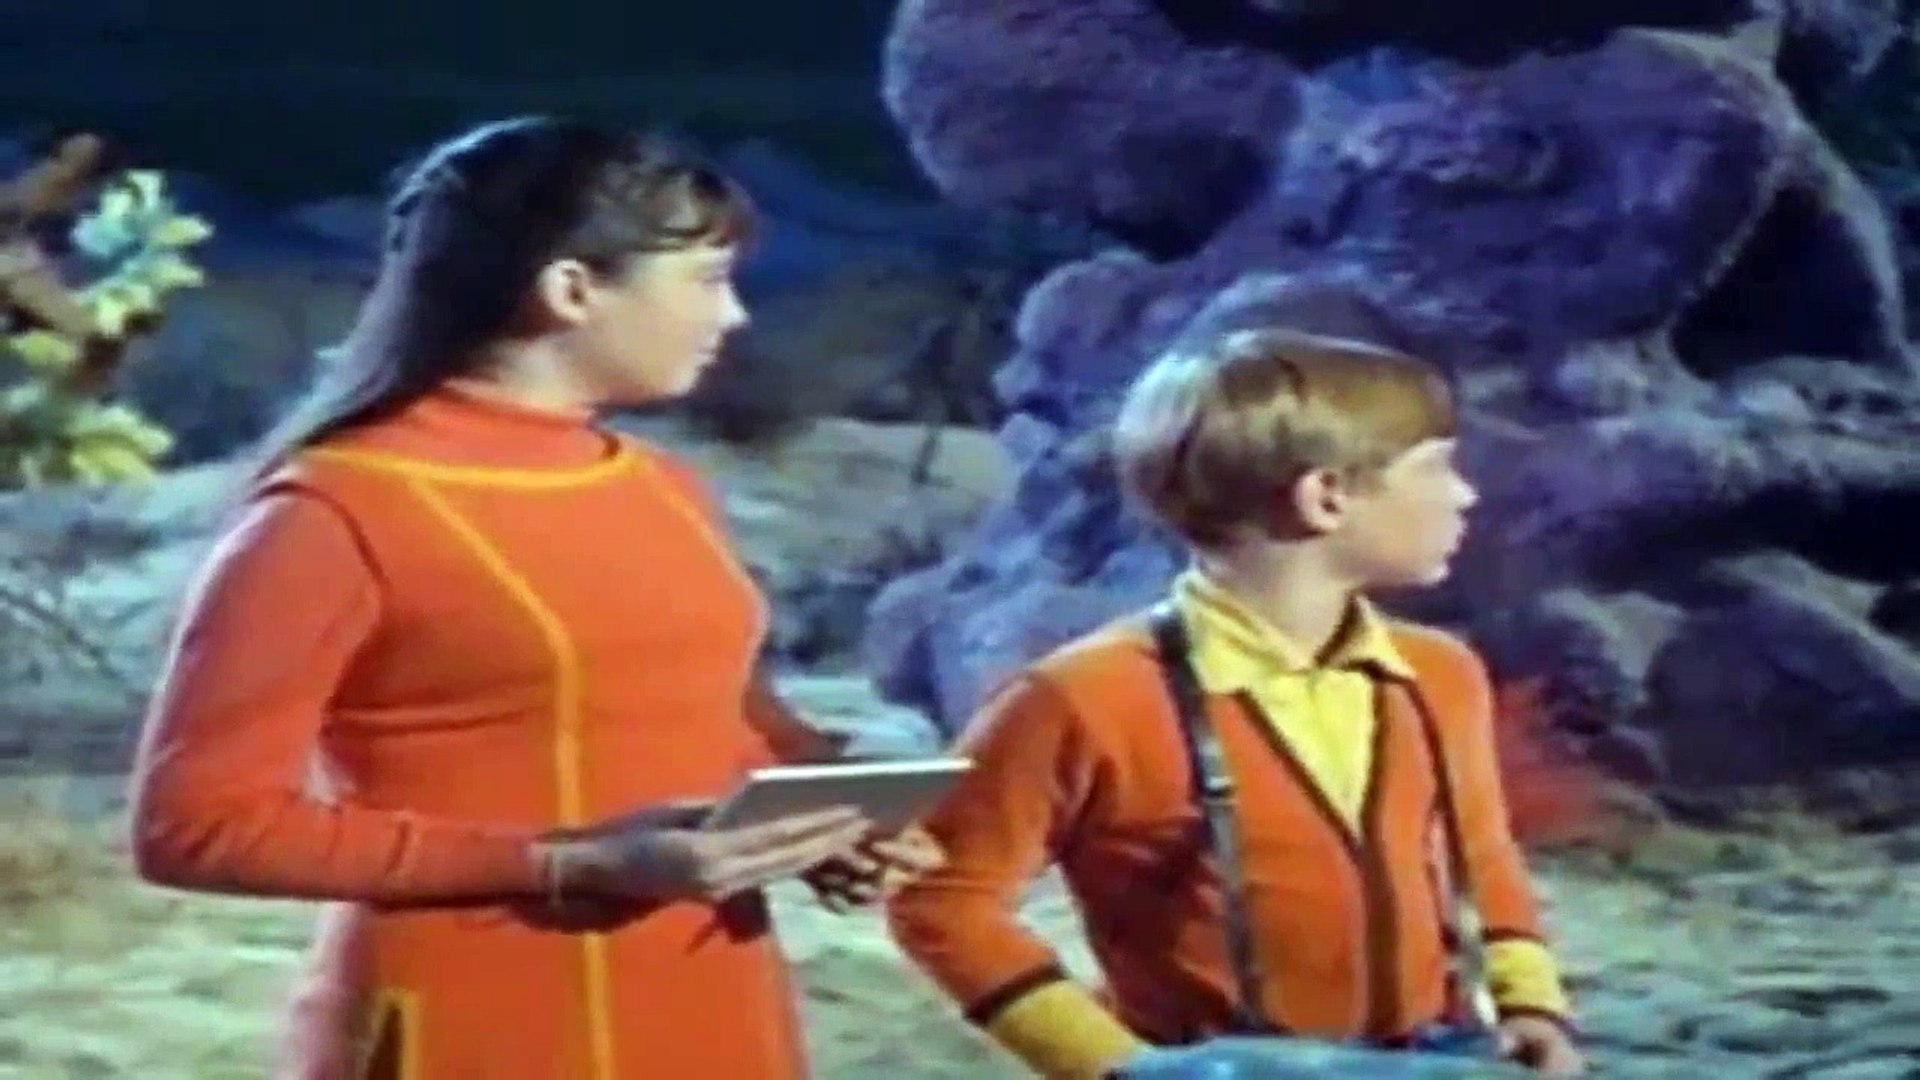 Lost In Space S02 E9  The Thief From Outer Space part 2/2